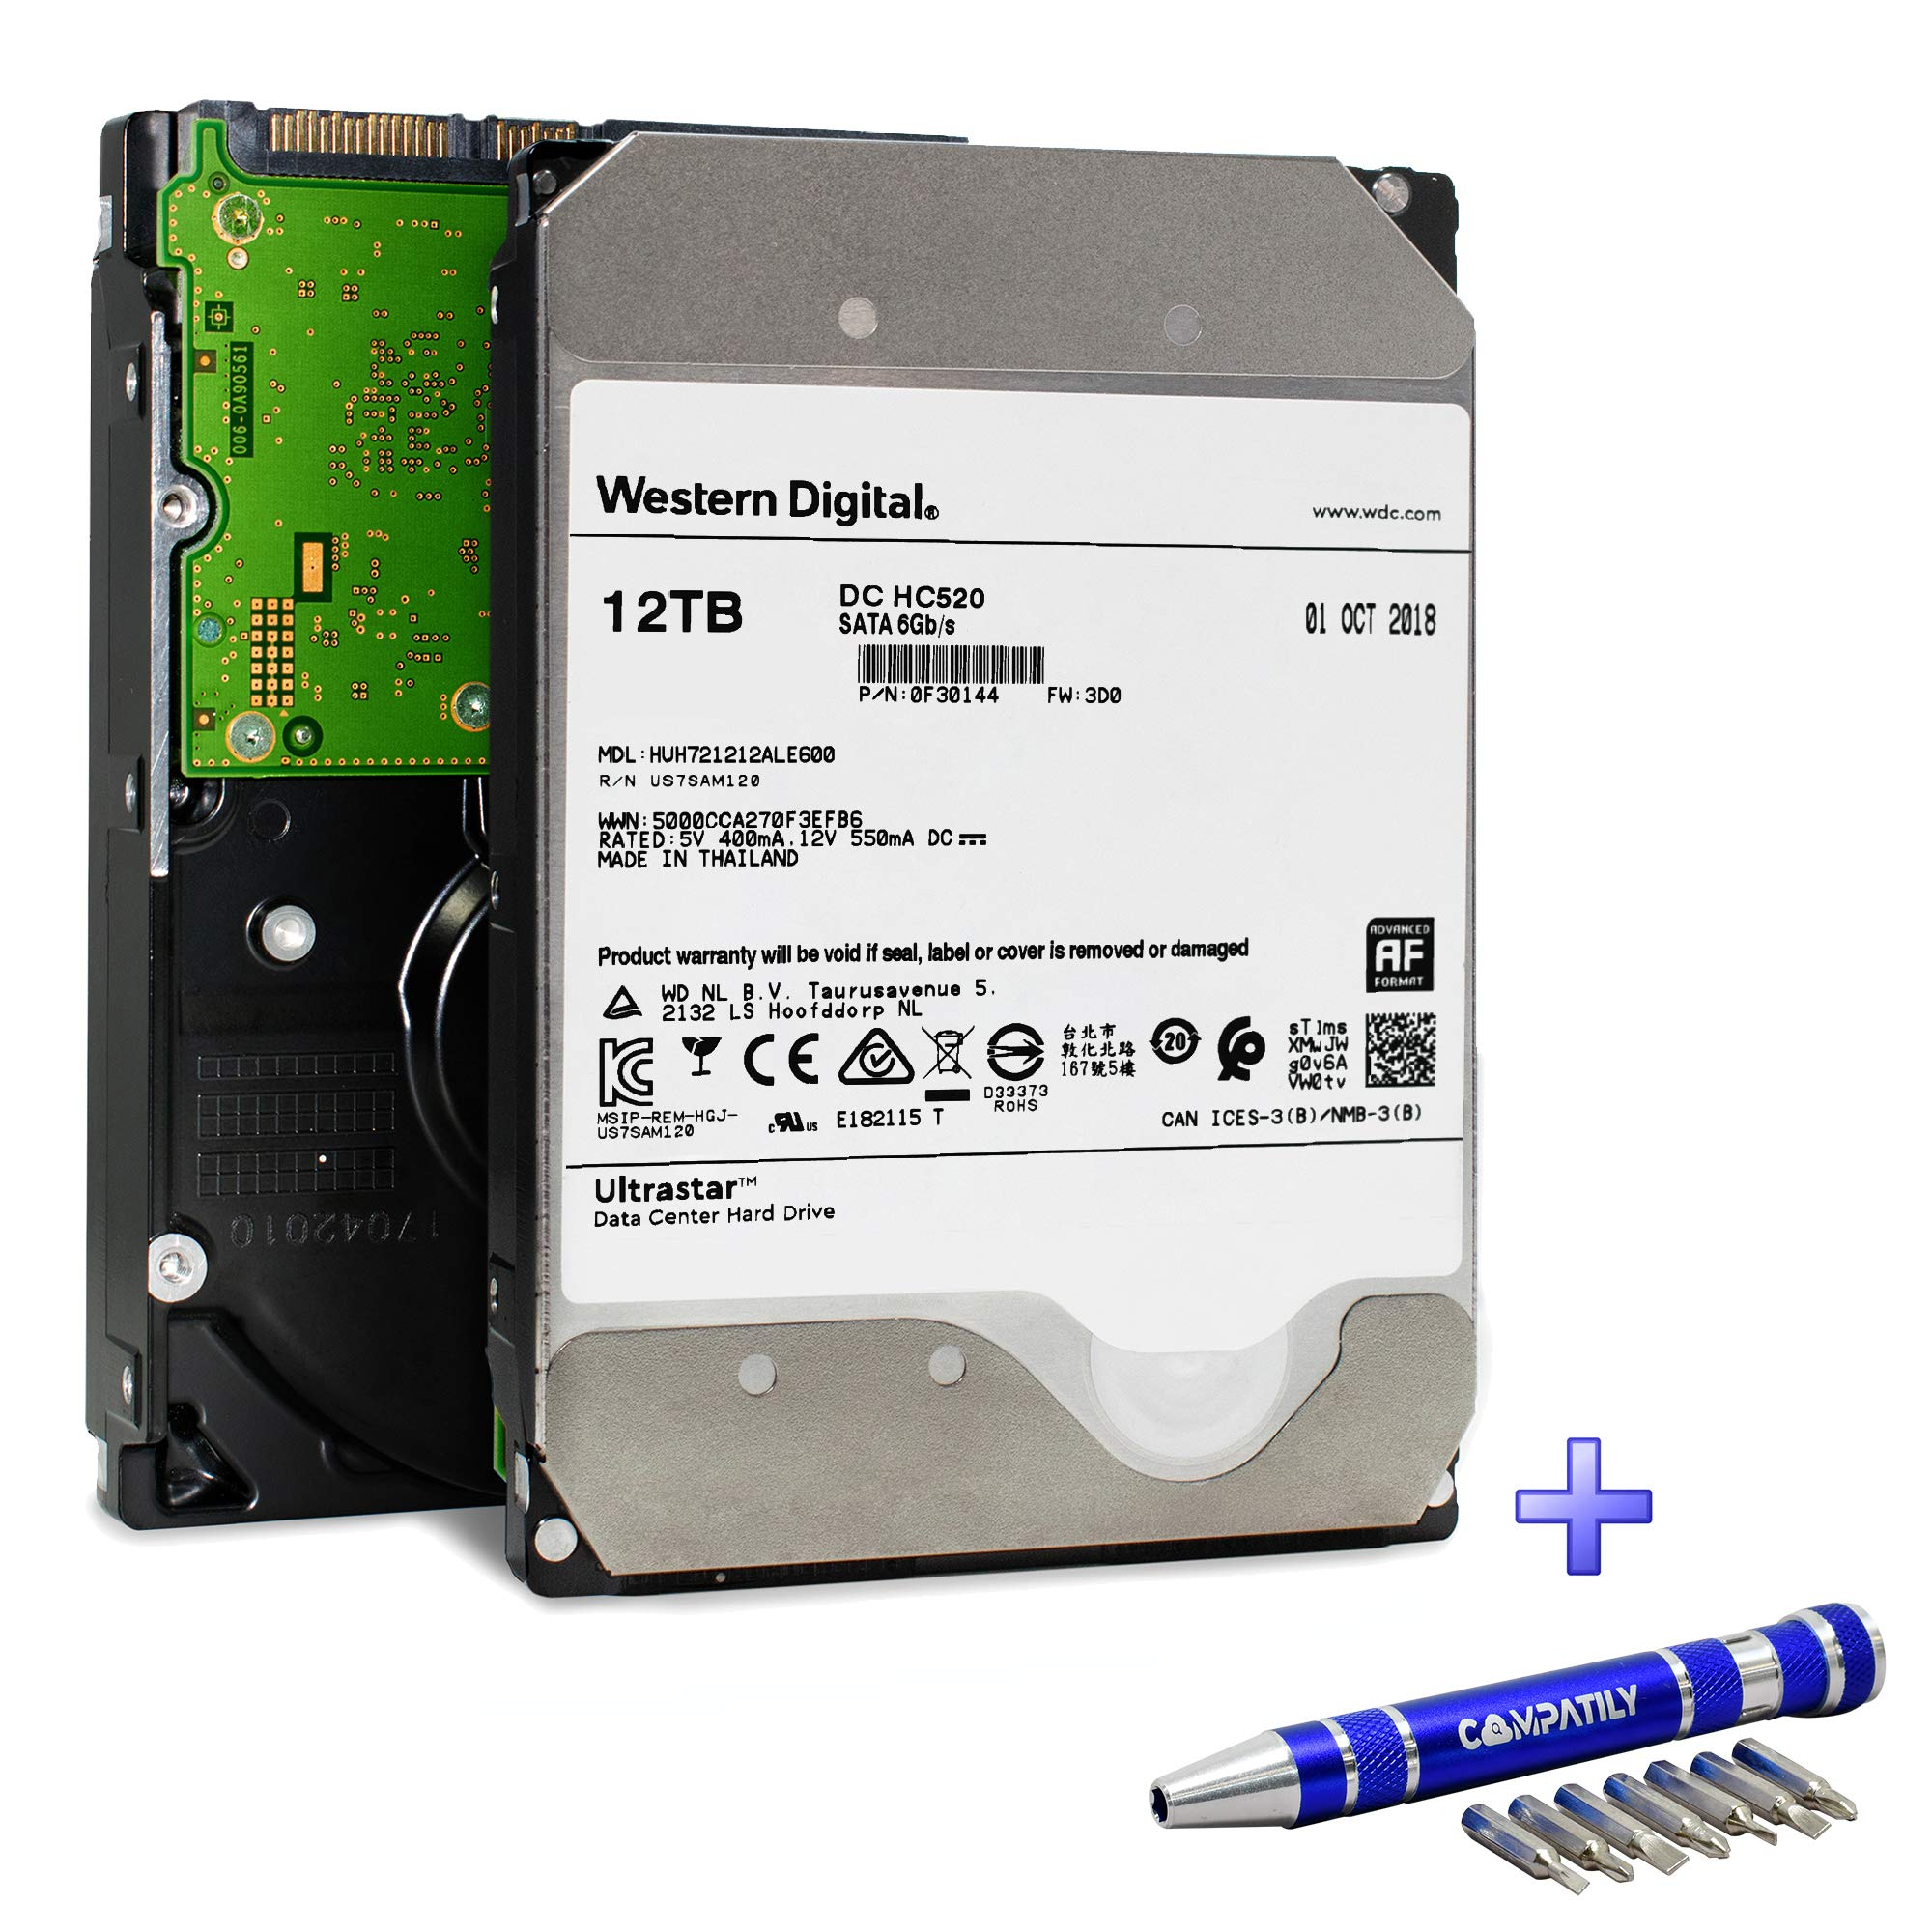 Western Digital Ultrastar DC HC520 HDD 12TB 7.2k RPM SATA 6Gb/s 256MB Cache 3.5-Inch Enterprise Internal Hard Drive | HUH721212ALE600 | 0F30144 | Bundle with COMPATILY Hard Drive Carrier Screw Kit